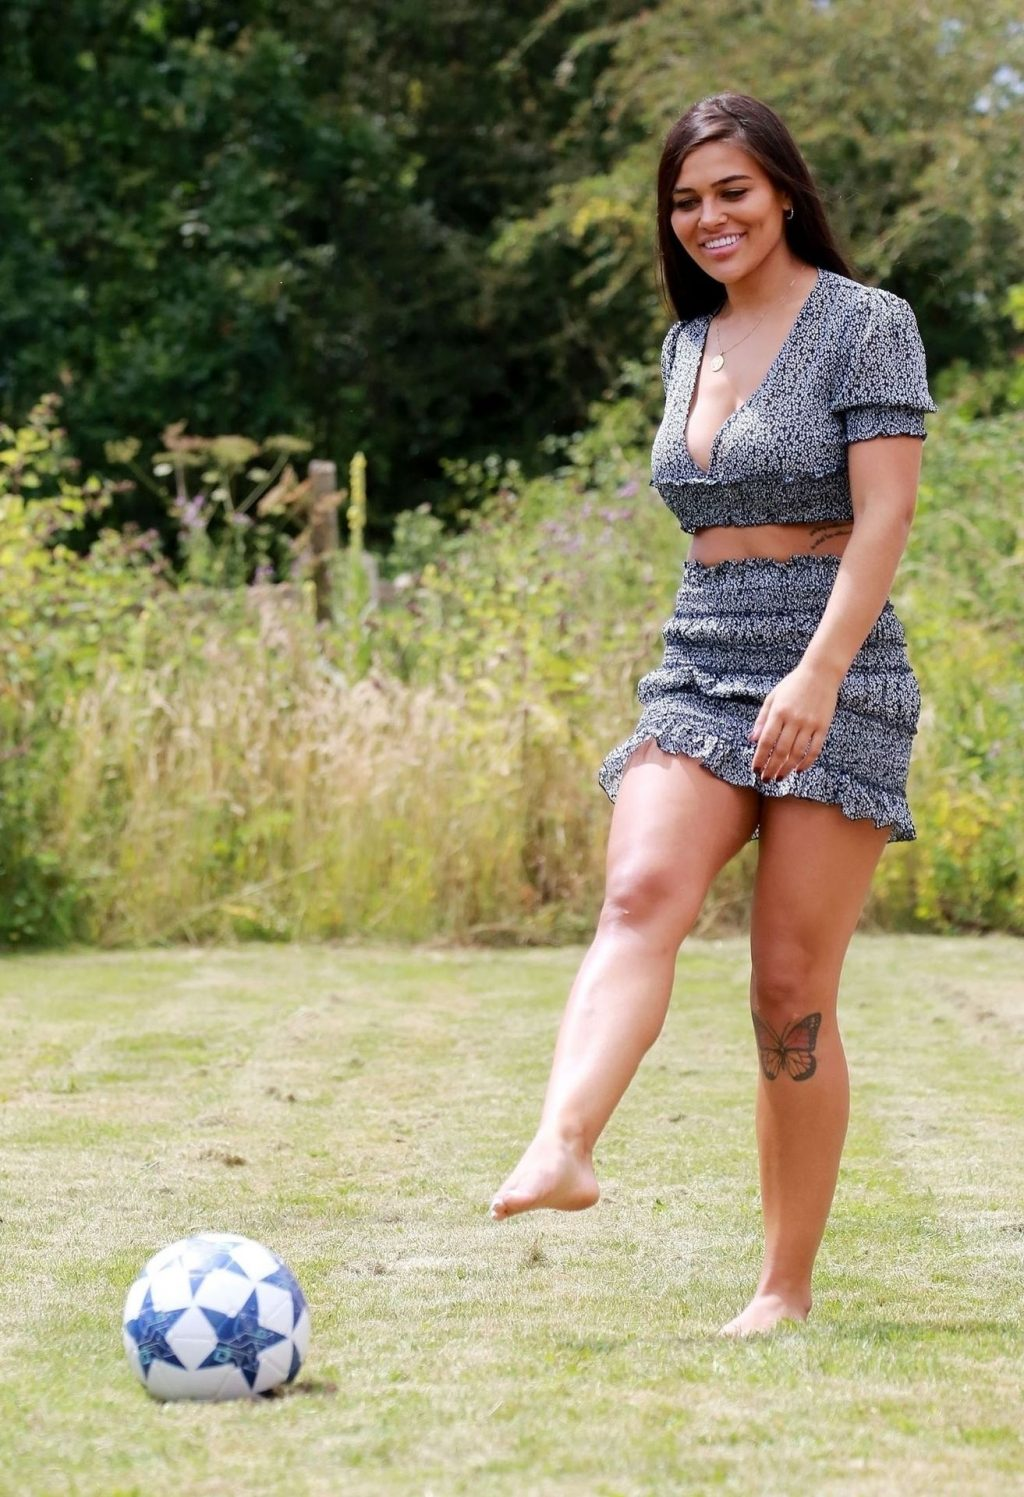 Busty Lydia Clyma Enjoys Some Quality Playtime in the Park (18 Photos)